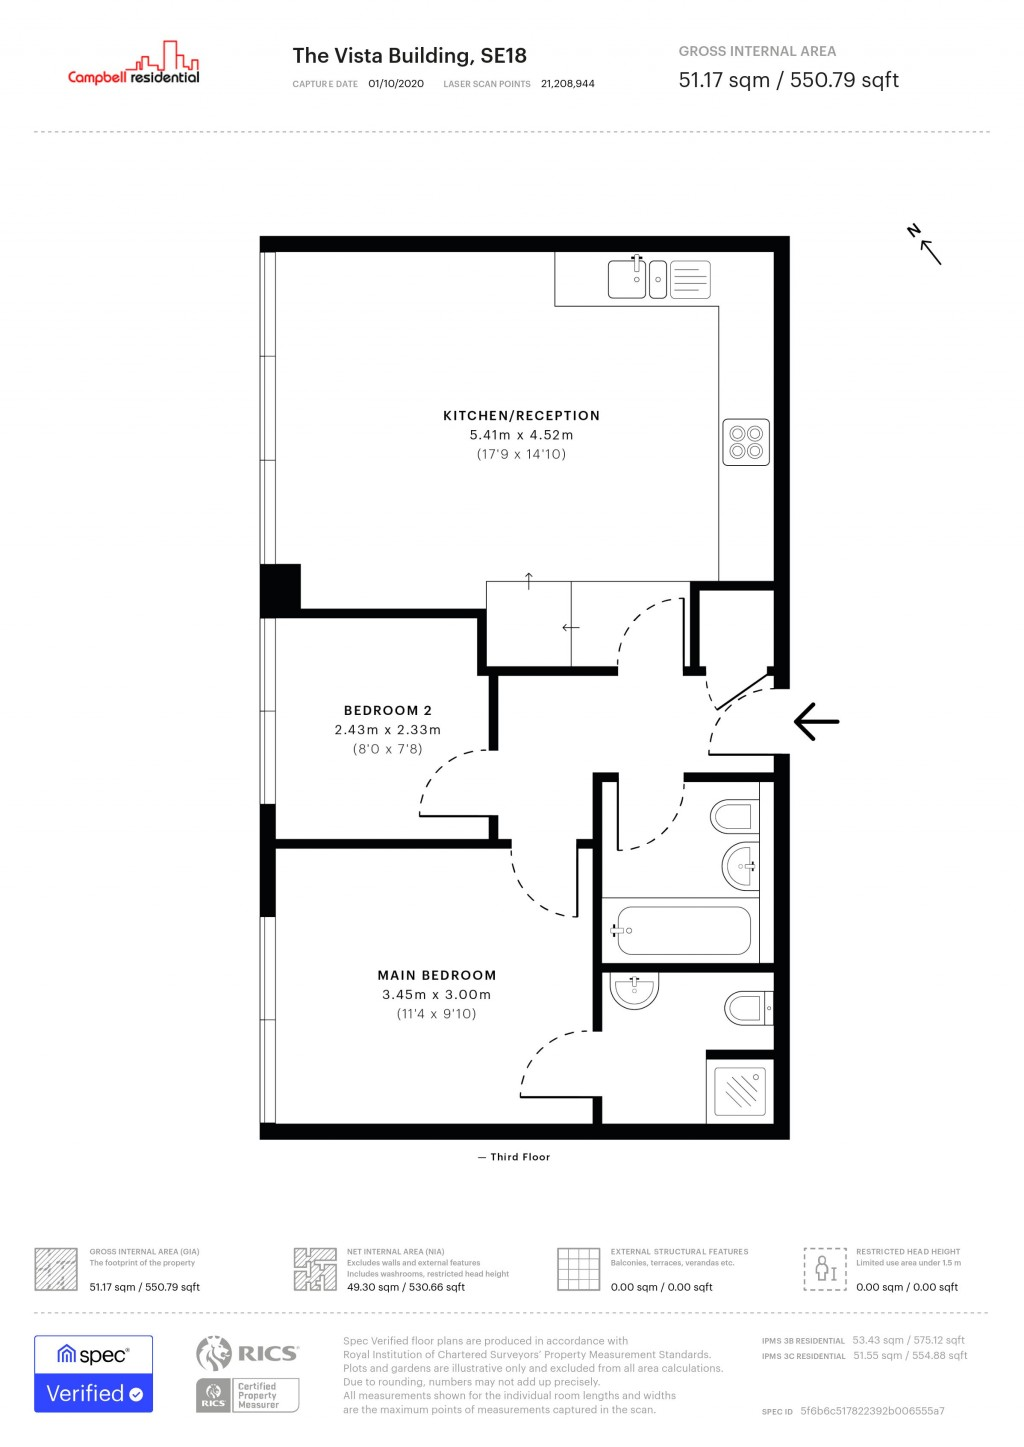 Floorplans For THE VISTA BUILDING 30 CALDERWOOD STREET SE18 6JF